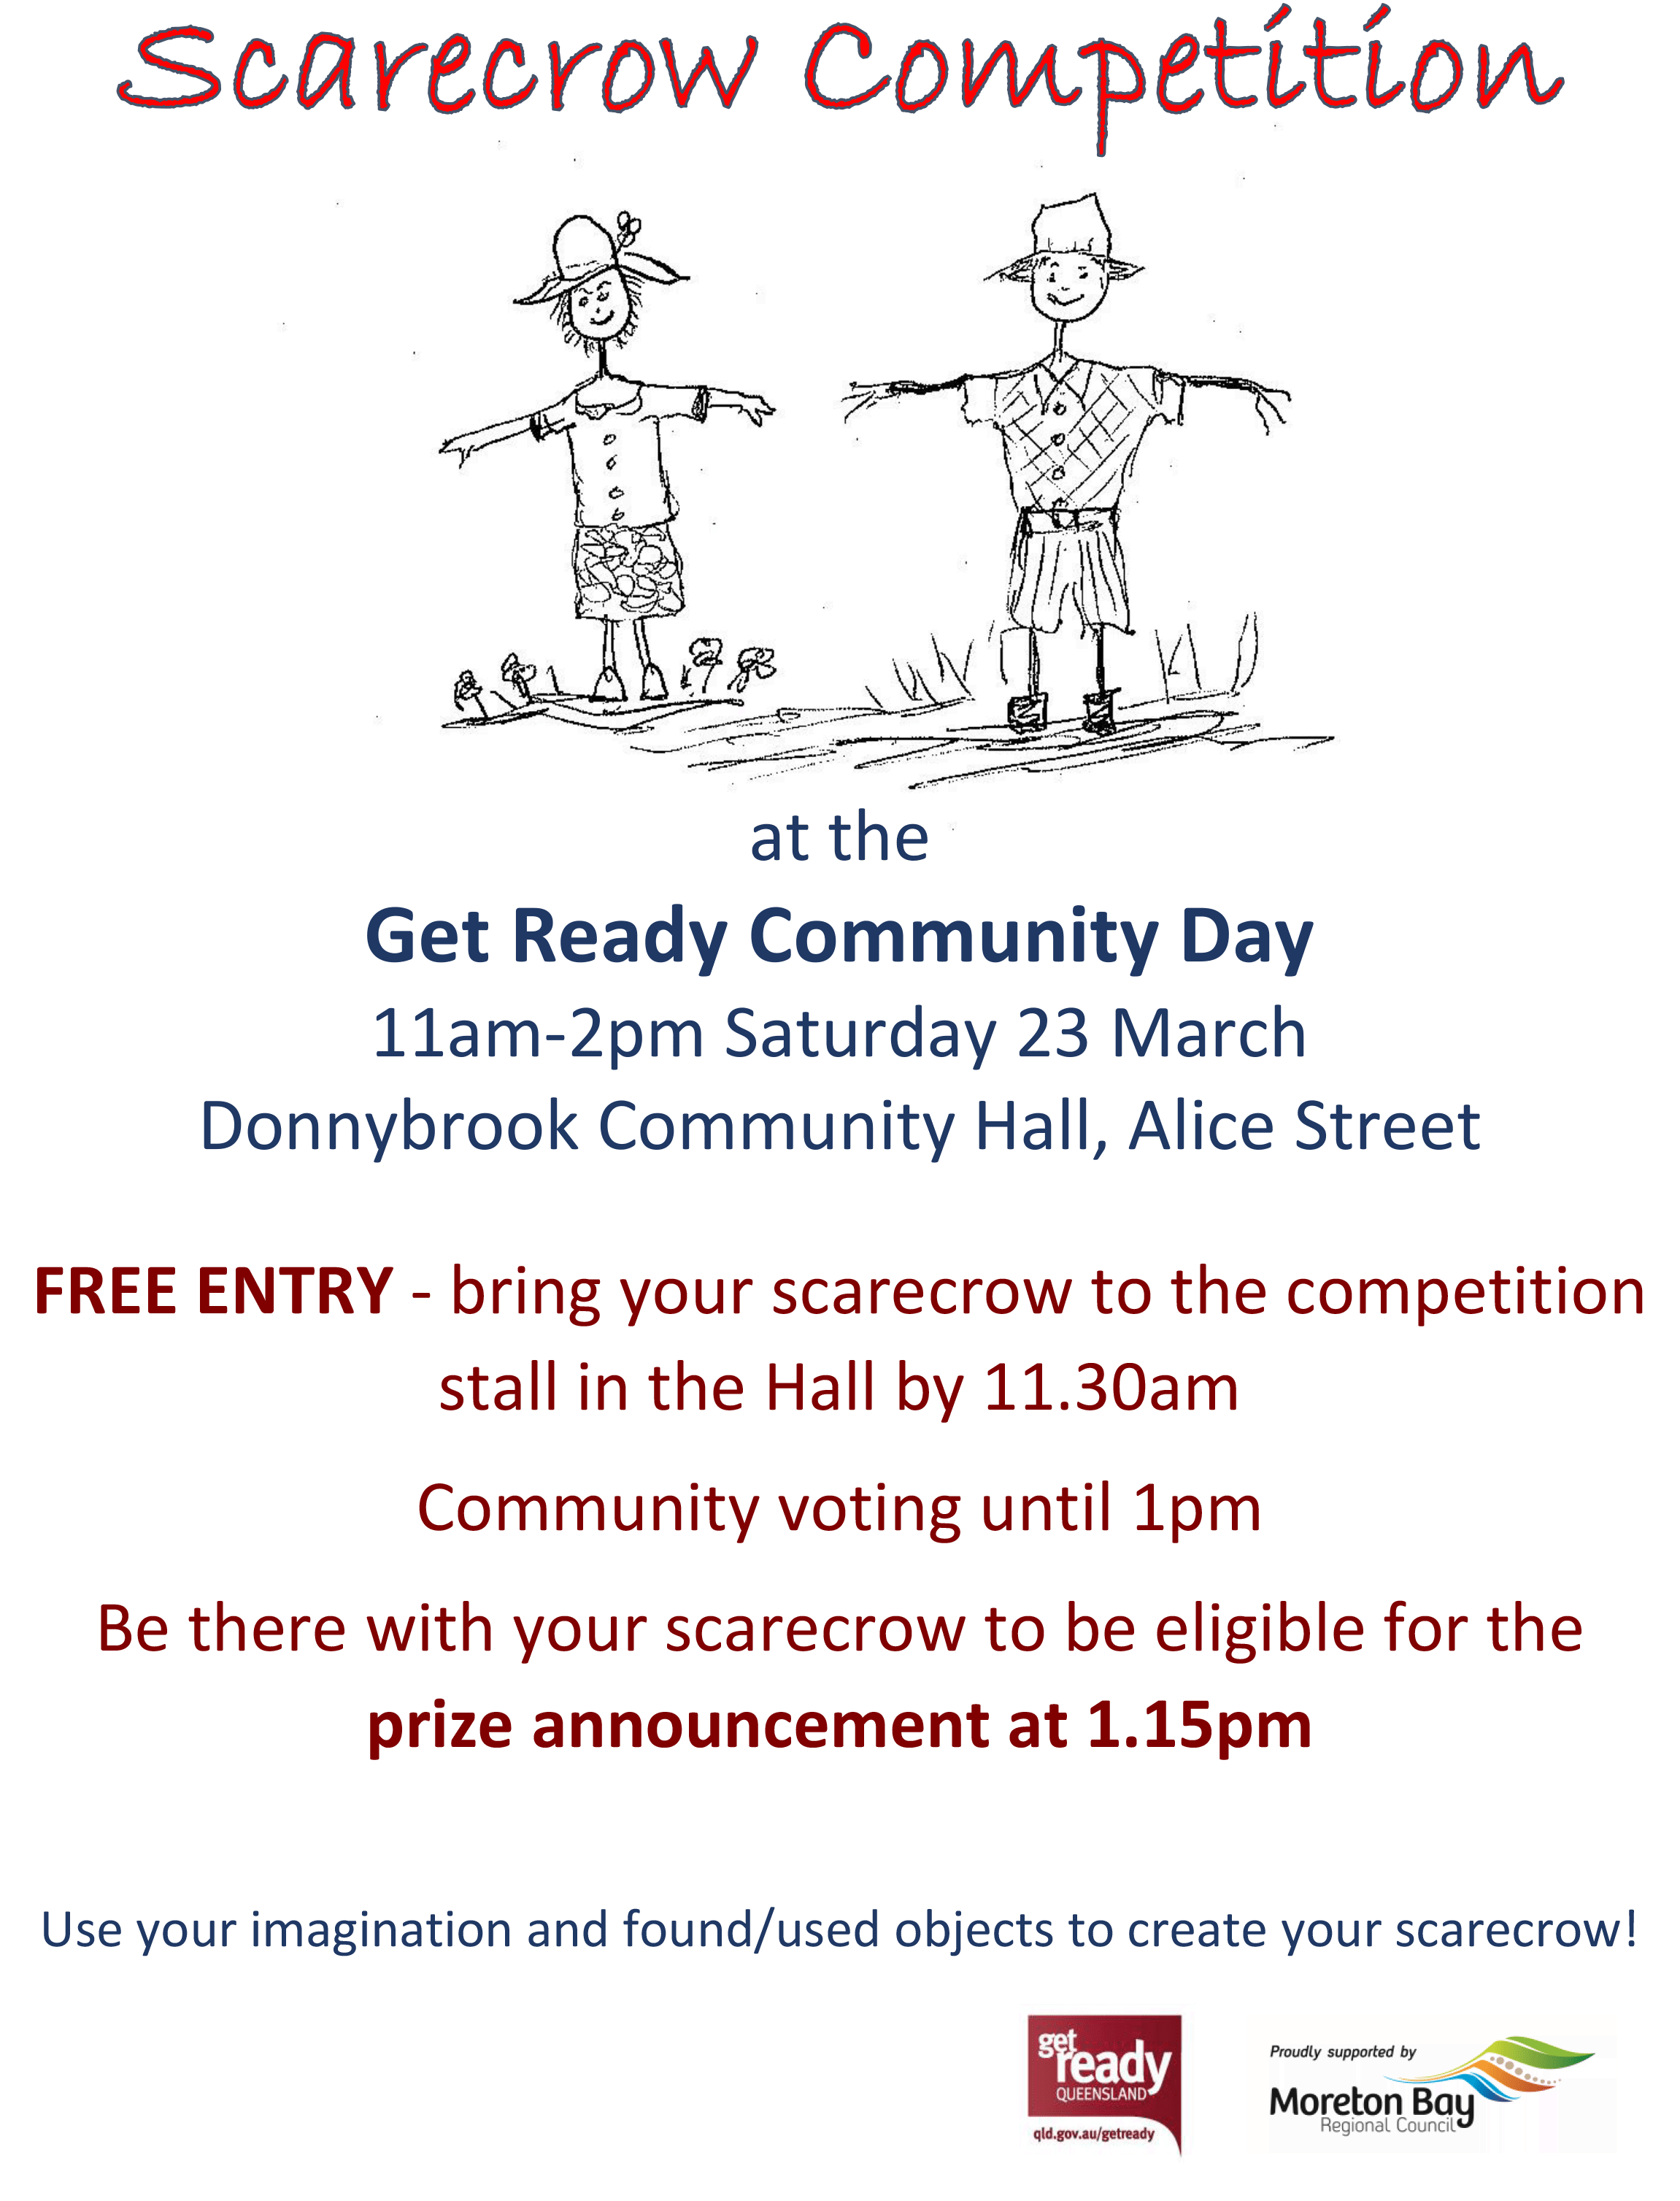 Scarecrow Competition at Community Day at Donnybrook Sat 23 March